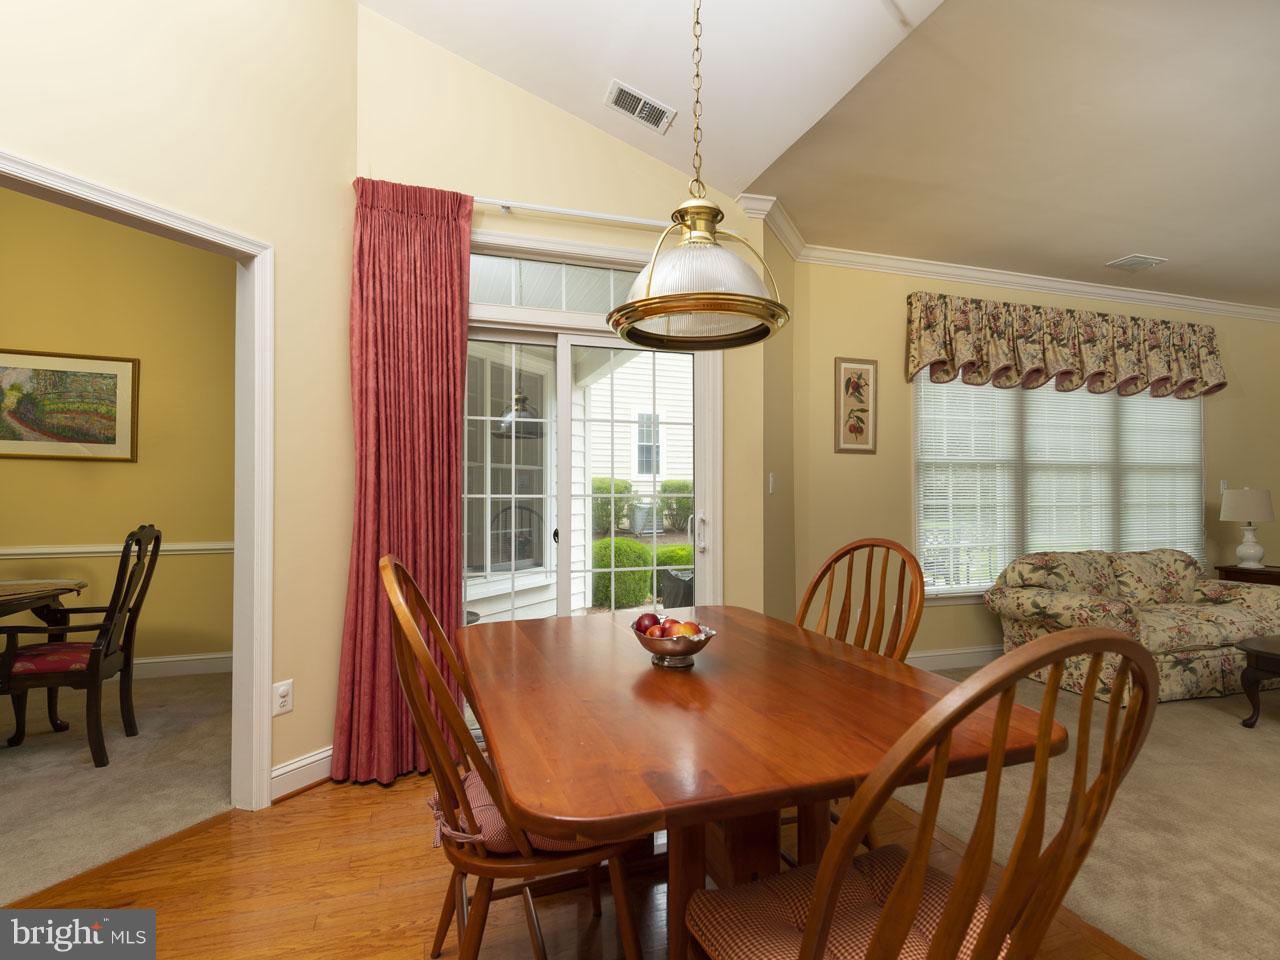 1005040466-300638084599-2021-07-22-06-45-08        Gainesville Delaware Real Estate For Sale   MLS# 1005040466  - Best of Northern Virginia